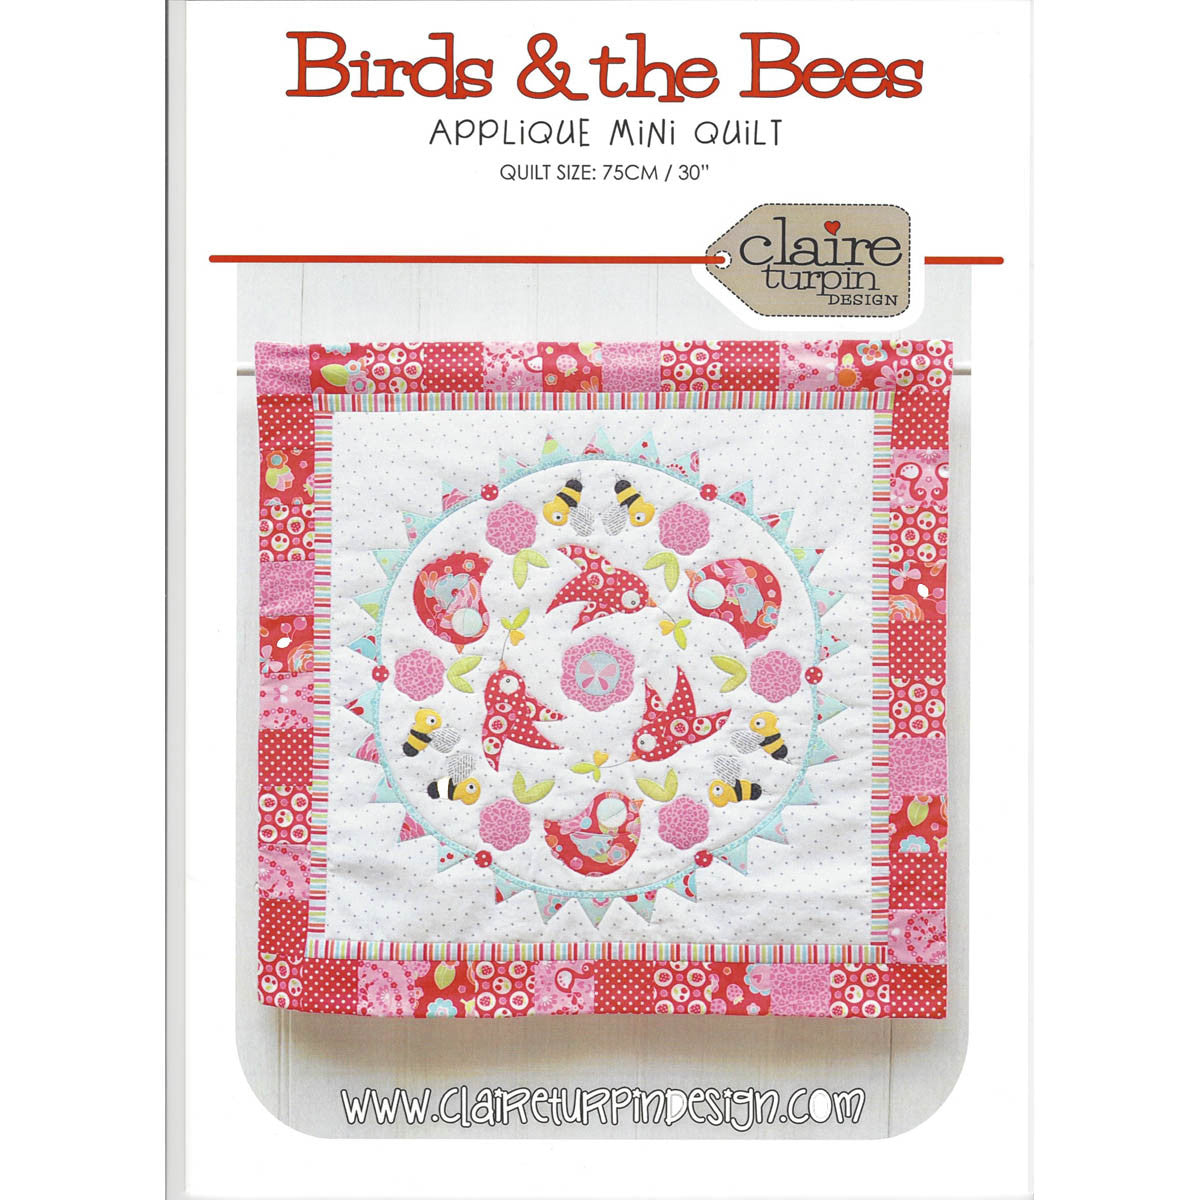 BIRDS & THE BEES - Pattern - Applique Mini Quilt by Claire Turpin Design